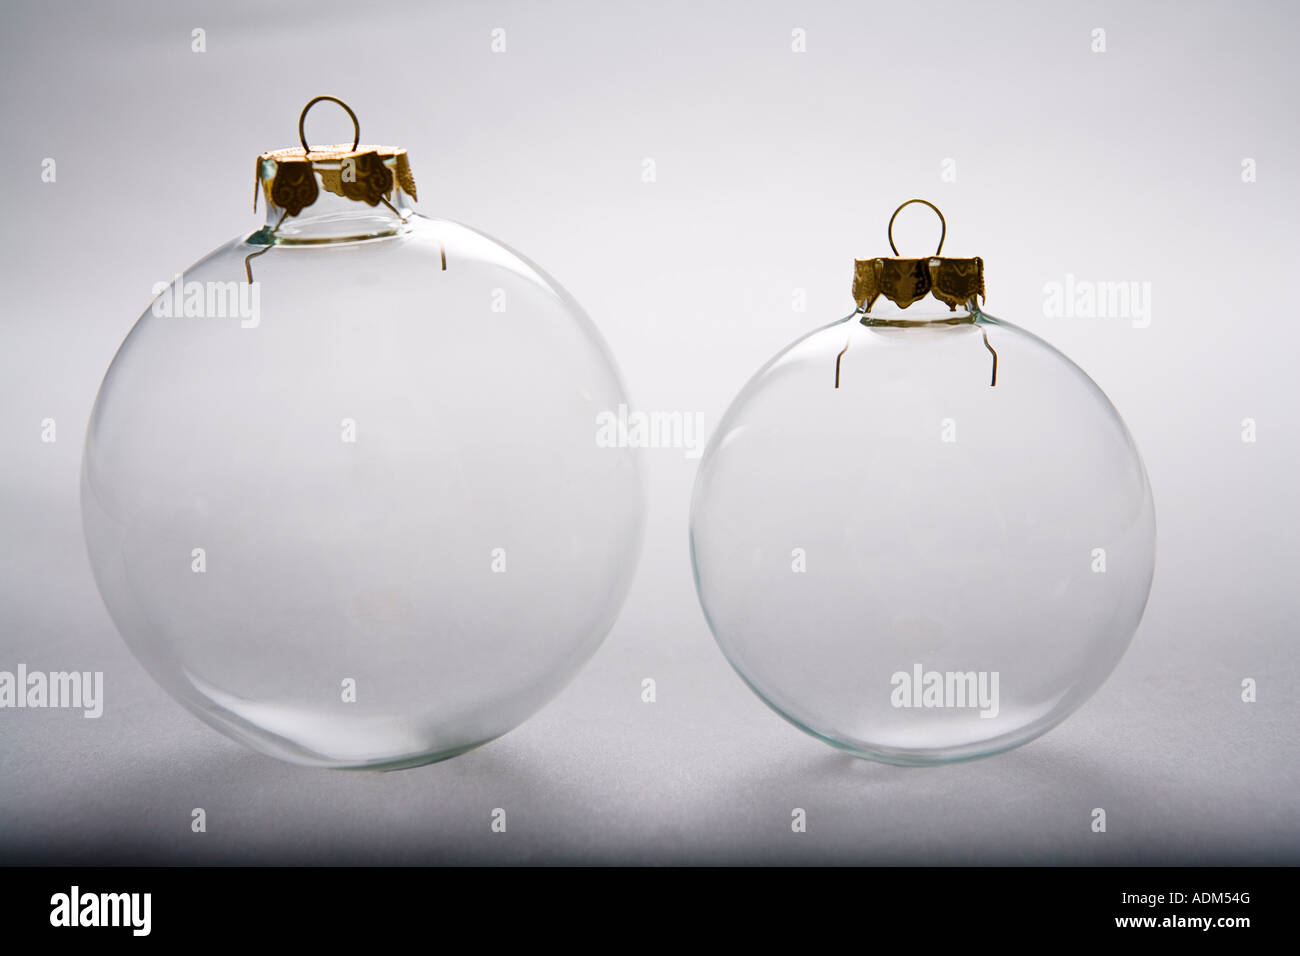 Large white christmas ornaments - Stock Photo Two Clear Christmas Tree Bulb Ornaments Large And Small On White Background Studio Portrait